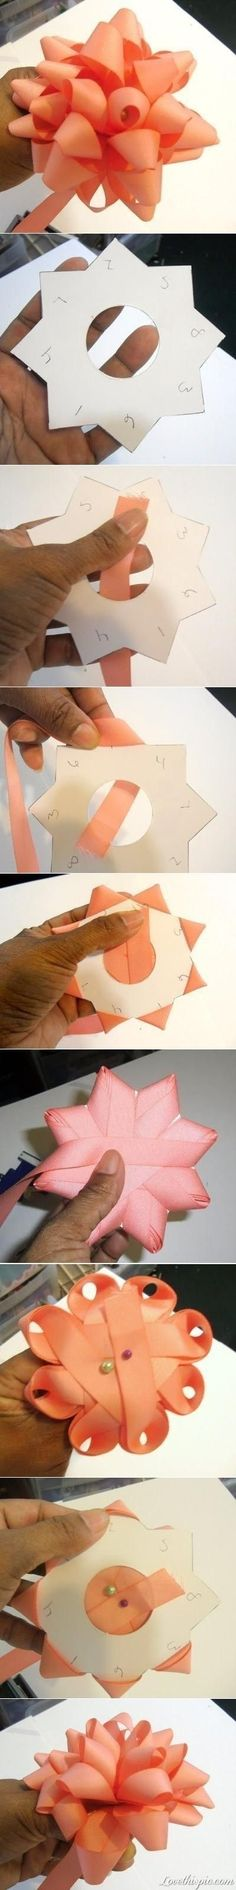 DIY Bow Ribbon diy crafts easy crafts crafty easy diy diy bow craft bow diy gifts @Kelly Teske Goldsworthy Teske Goldsworthy frazier Zaragoza Bacon